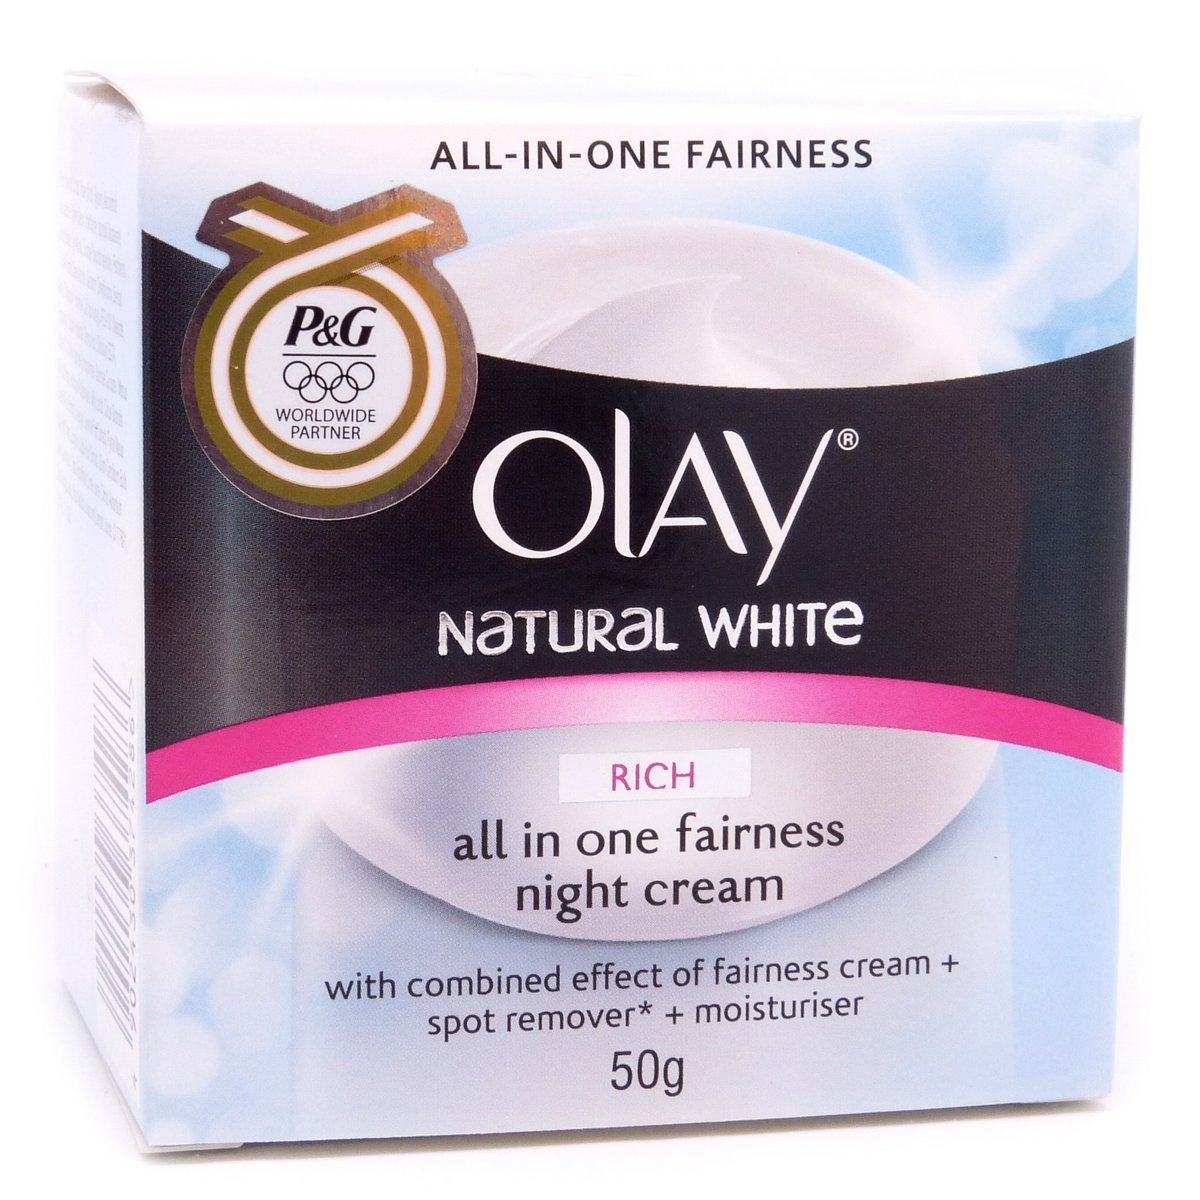 Olay Natural White Night Cream Fairness 50 G New Made in Thailand